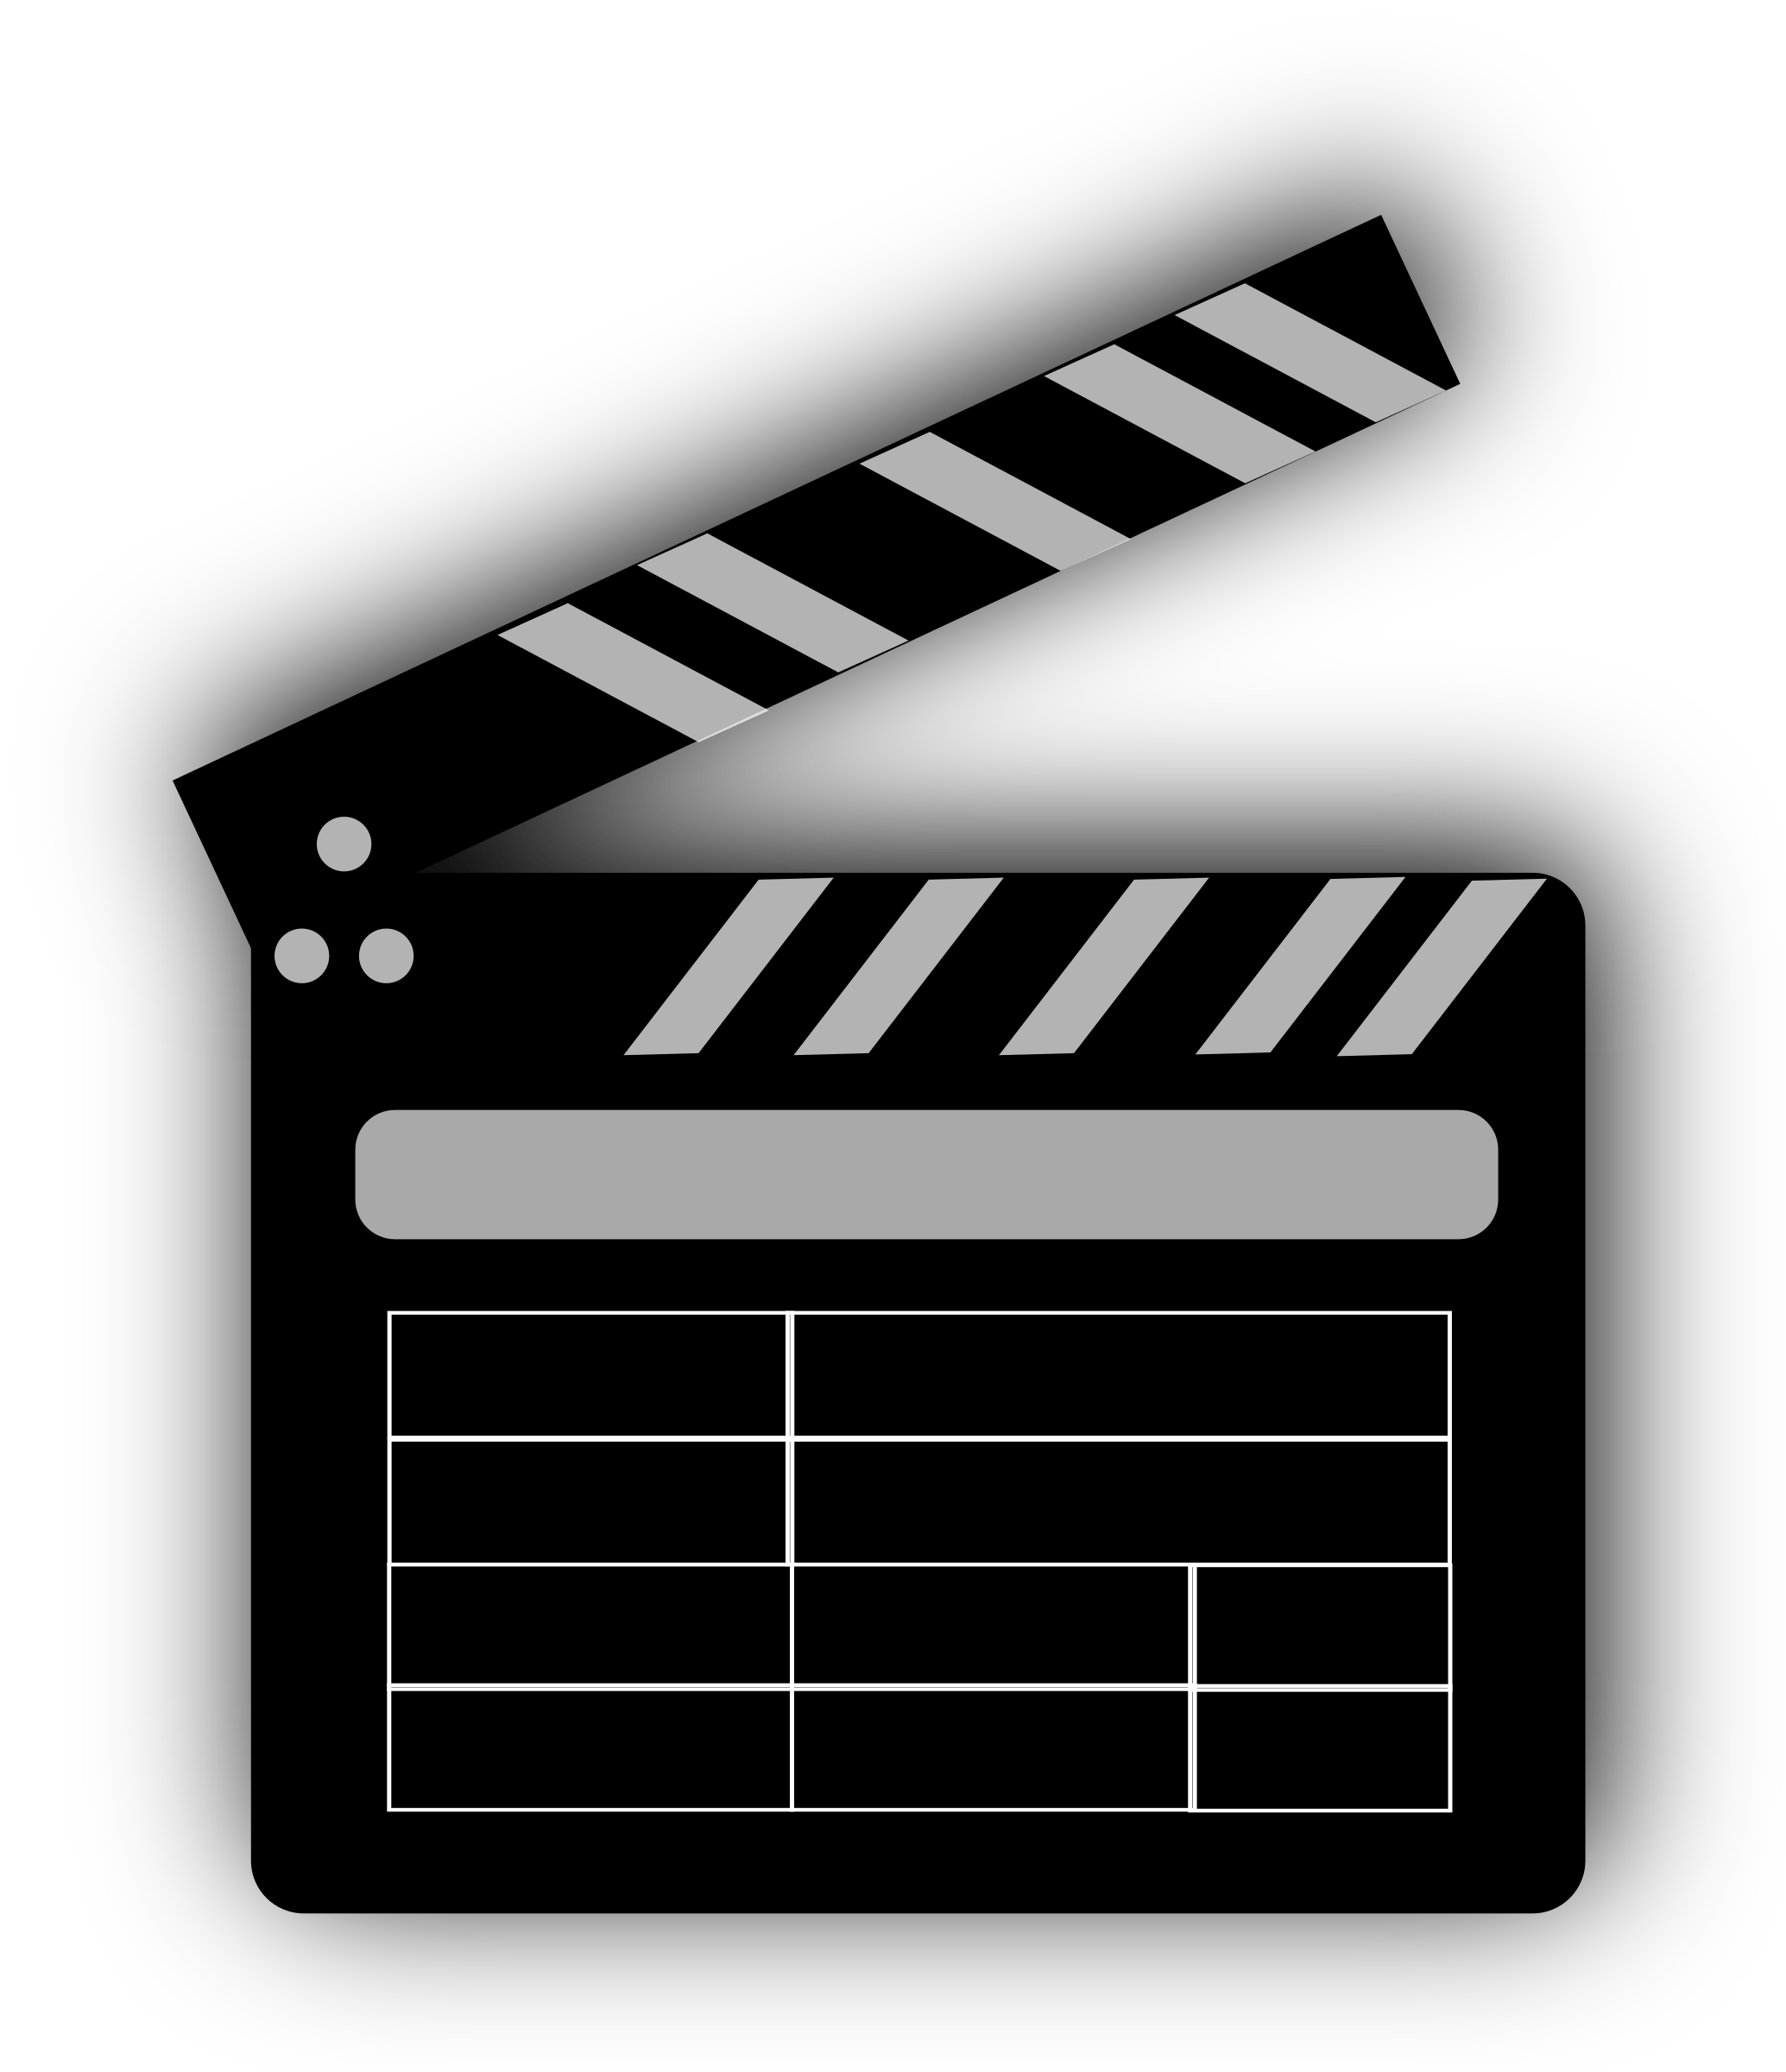 Clip cut film. Clapperboard png transparent images